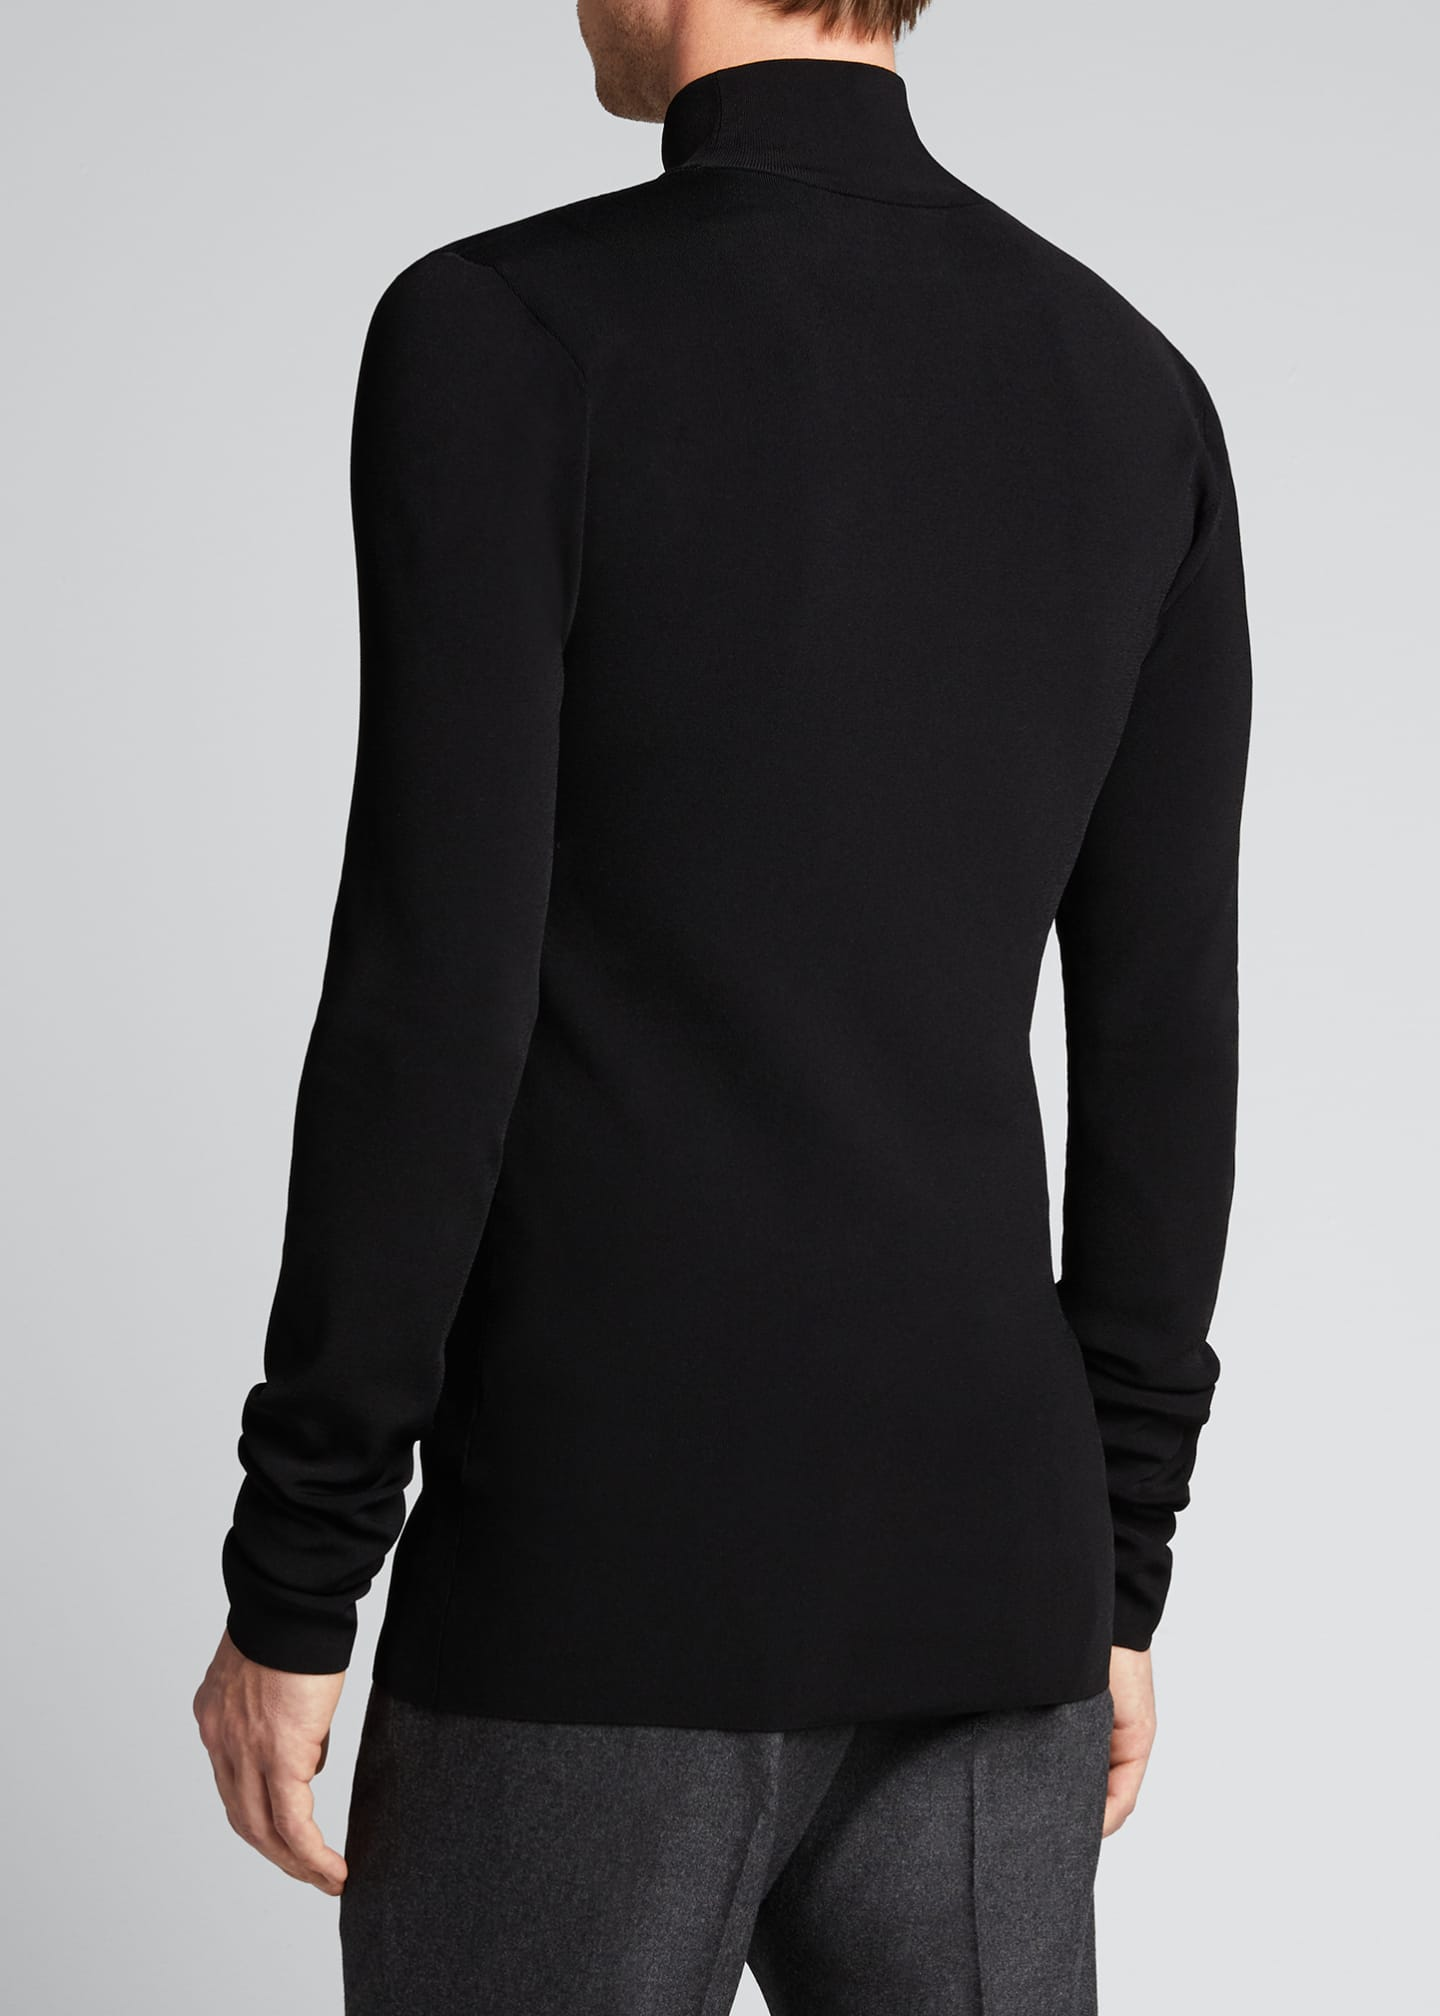 Image 2 of 5: Men's Tech-Knit Turtleneck Sweater